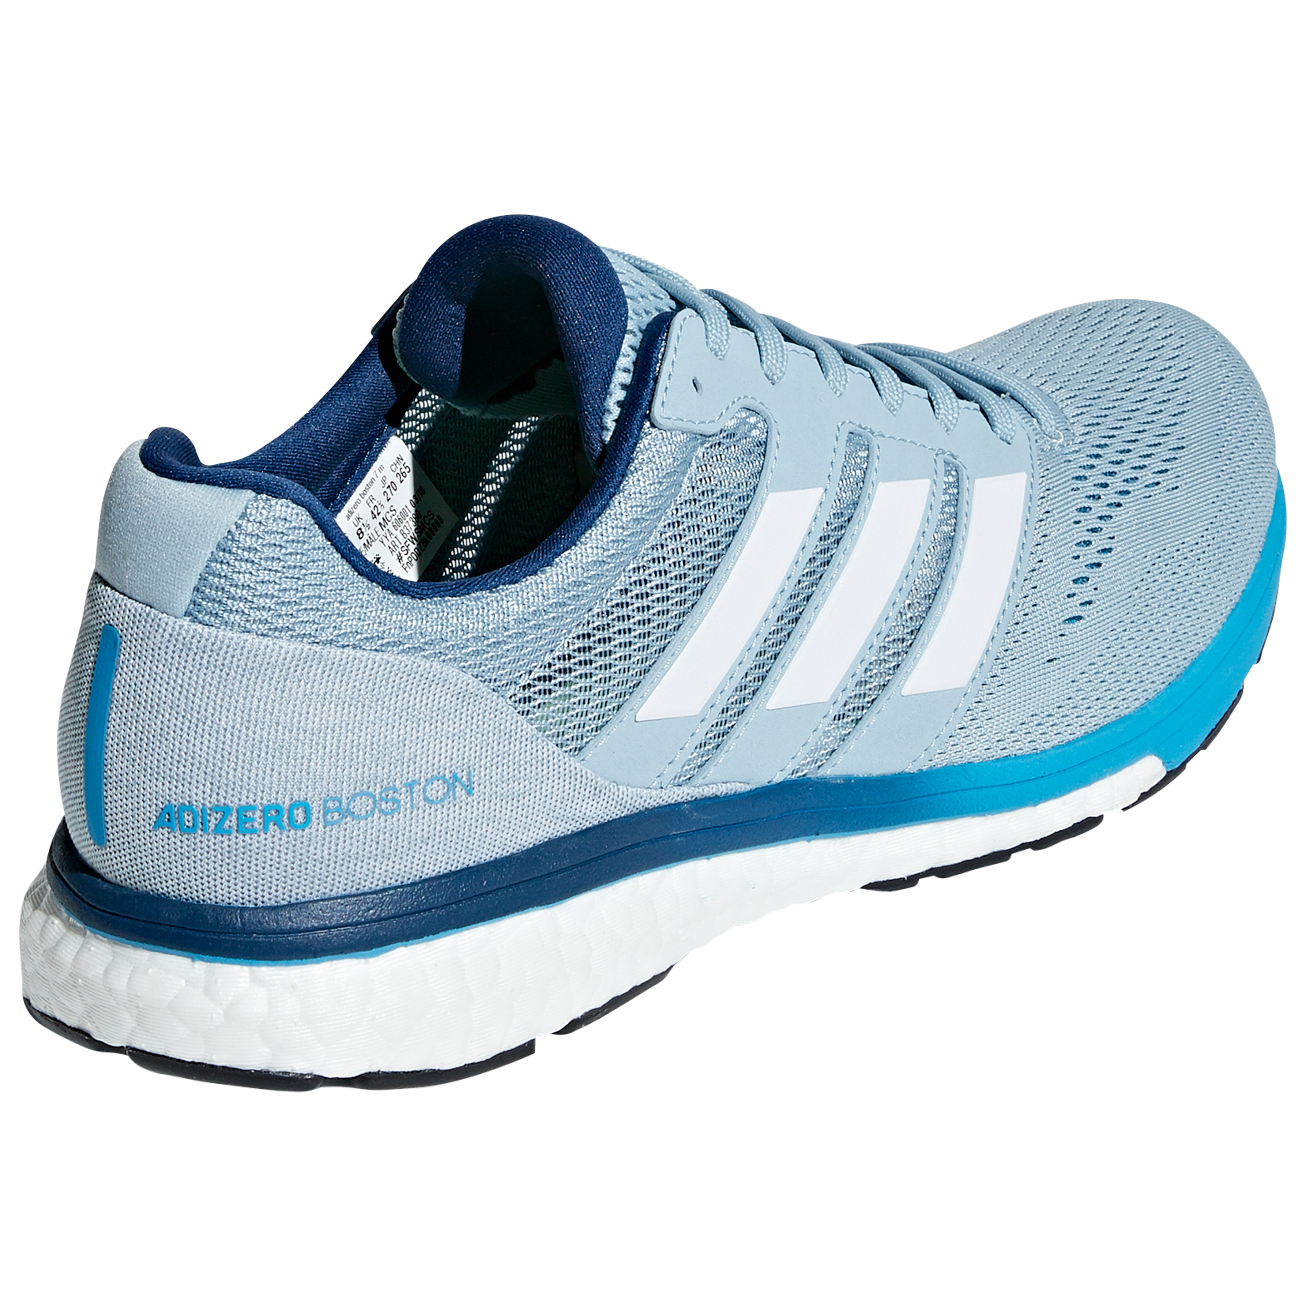 buy popular 03b72 28438 Adidas Adizero Boston 7 - Running Shoes Men's | Buy online ...